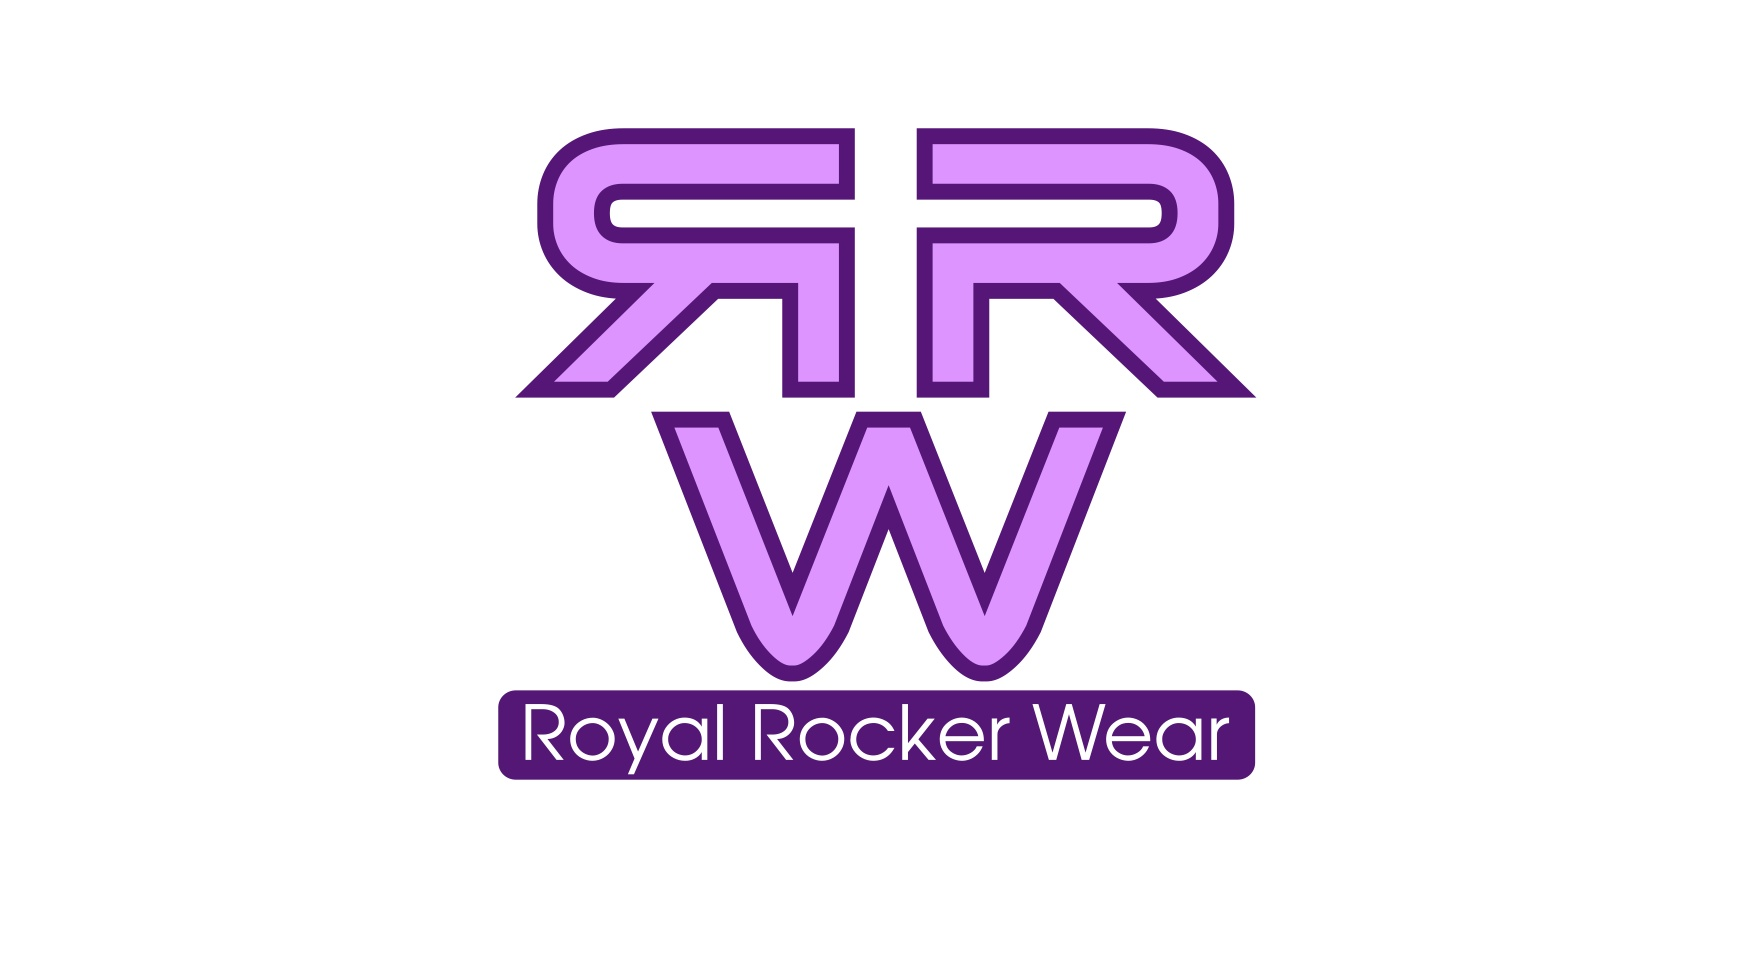 Royal Rocker Wear